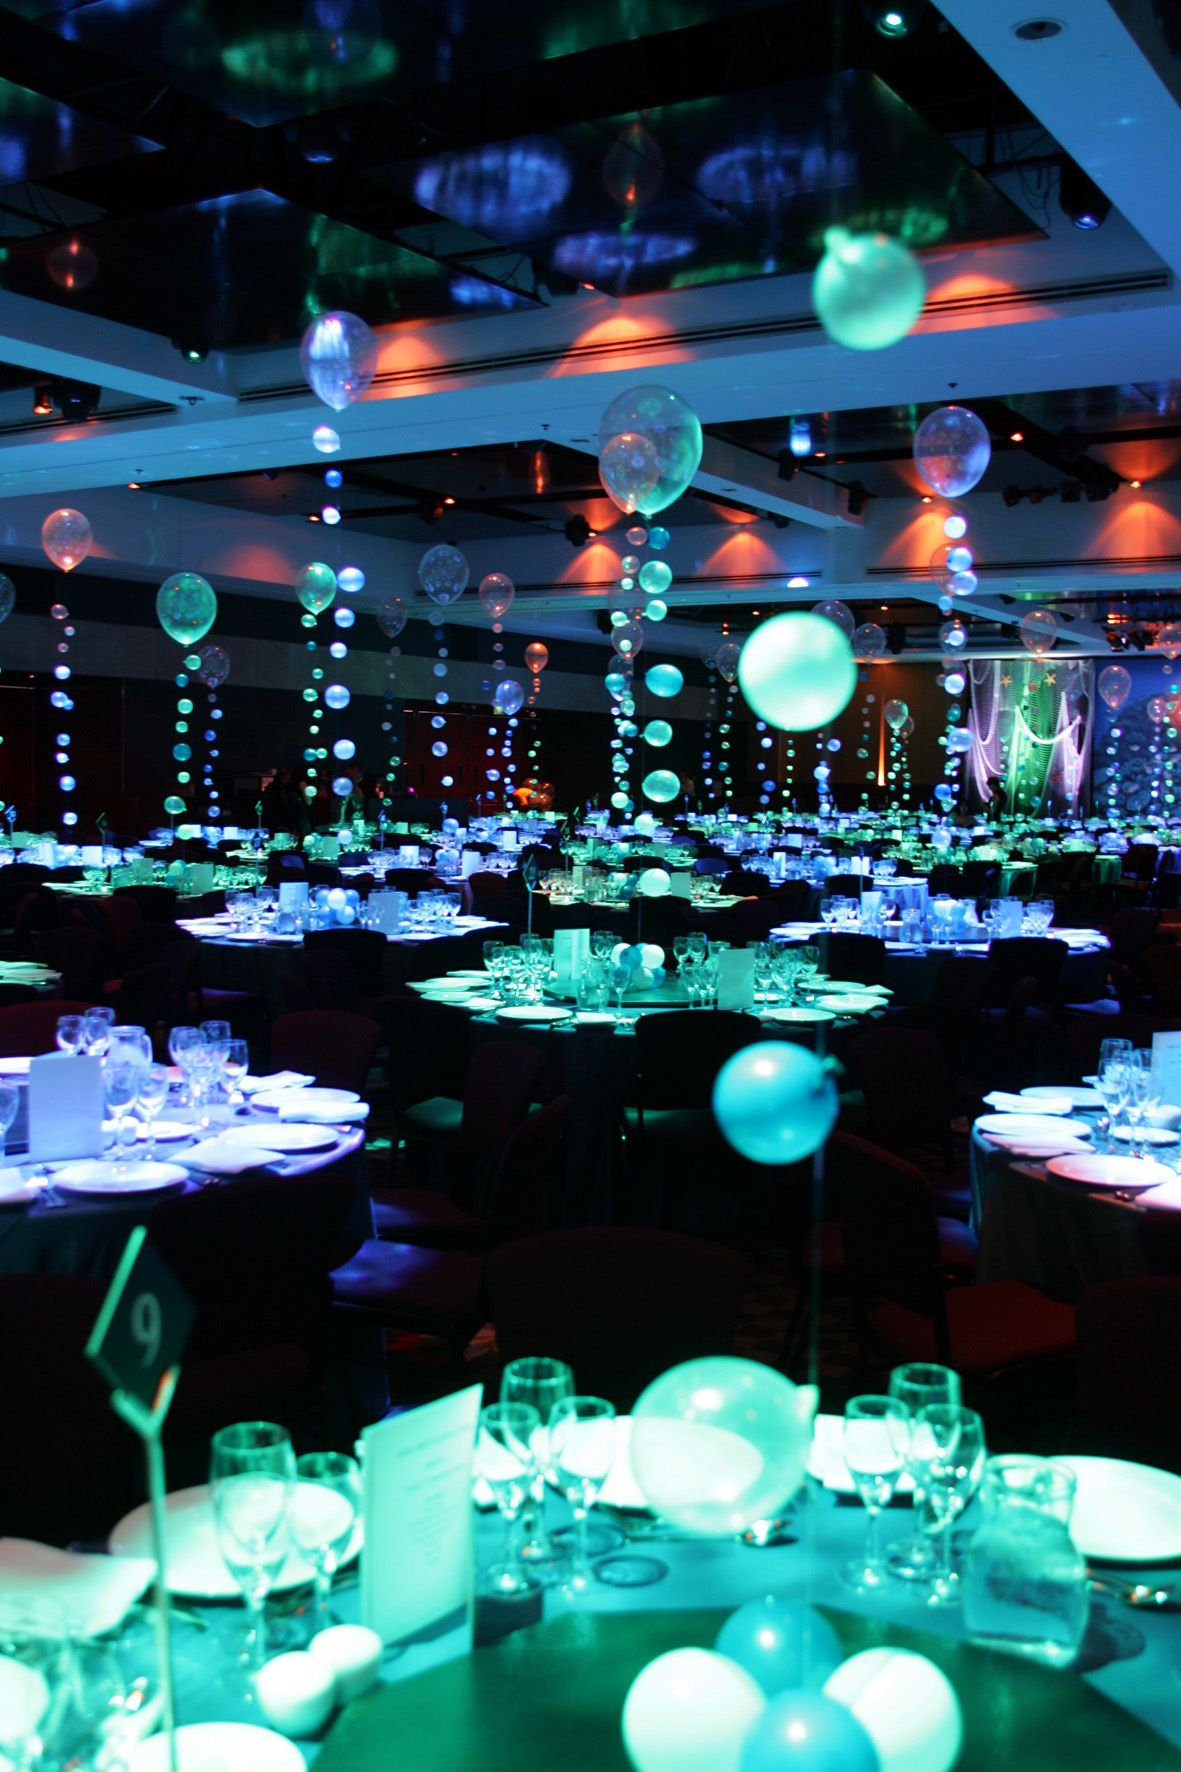 Underwater Theme How Cool Is This This Is The Best Image Of What Prom 2014 Could Look Like Decor De Bal De Promo Bal De Promo Theme De Mariage